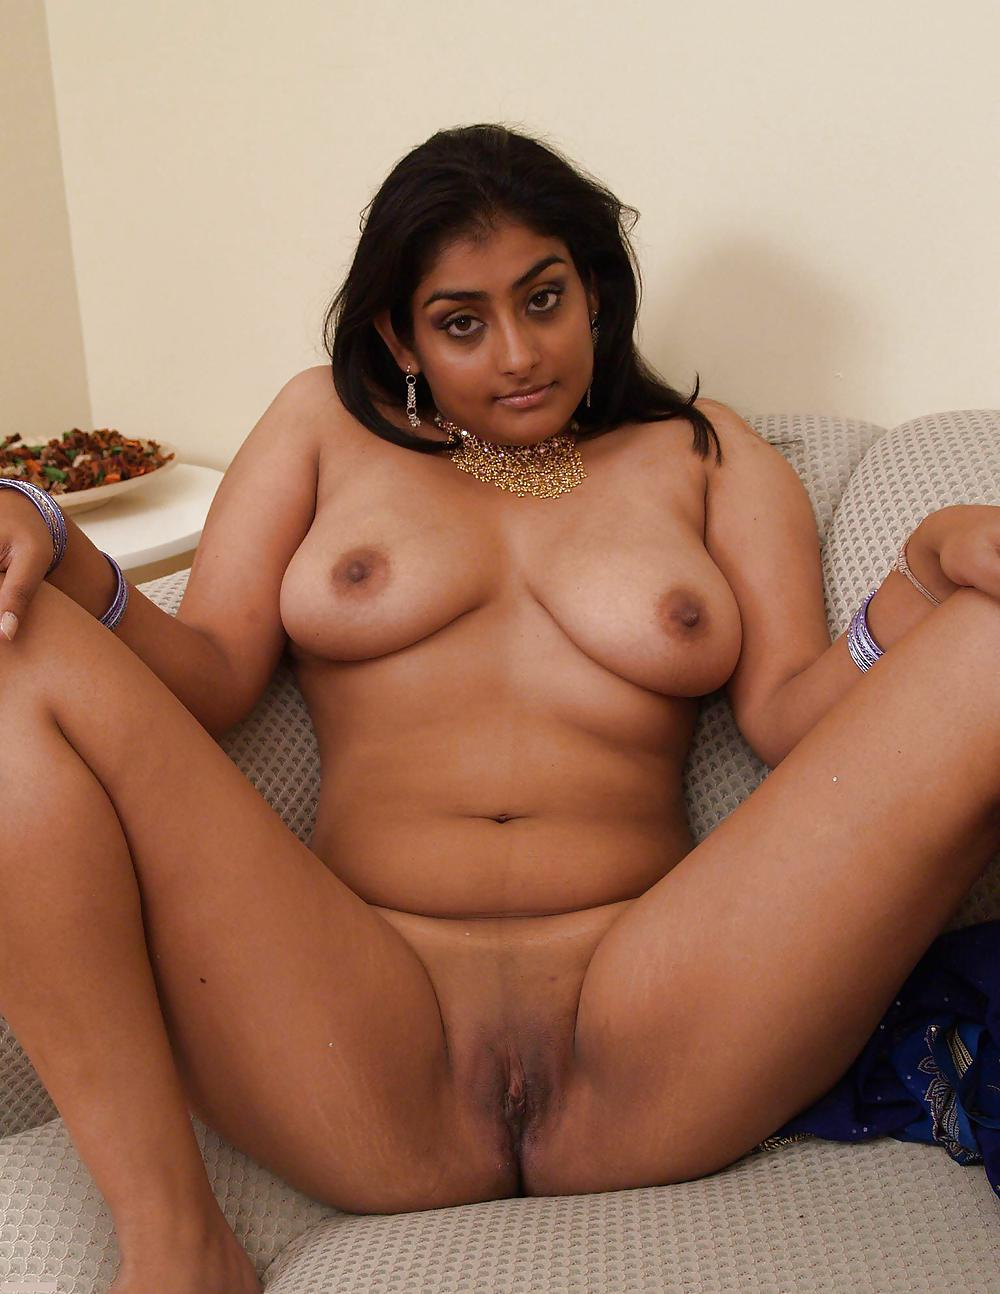 Punjabi girl nude tumblr, sex nude photo of porn model briana banks